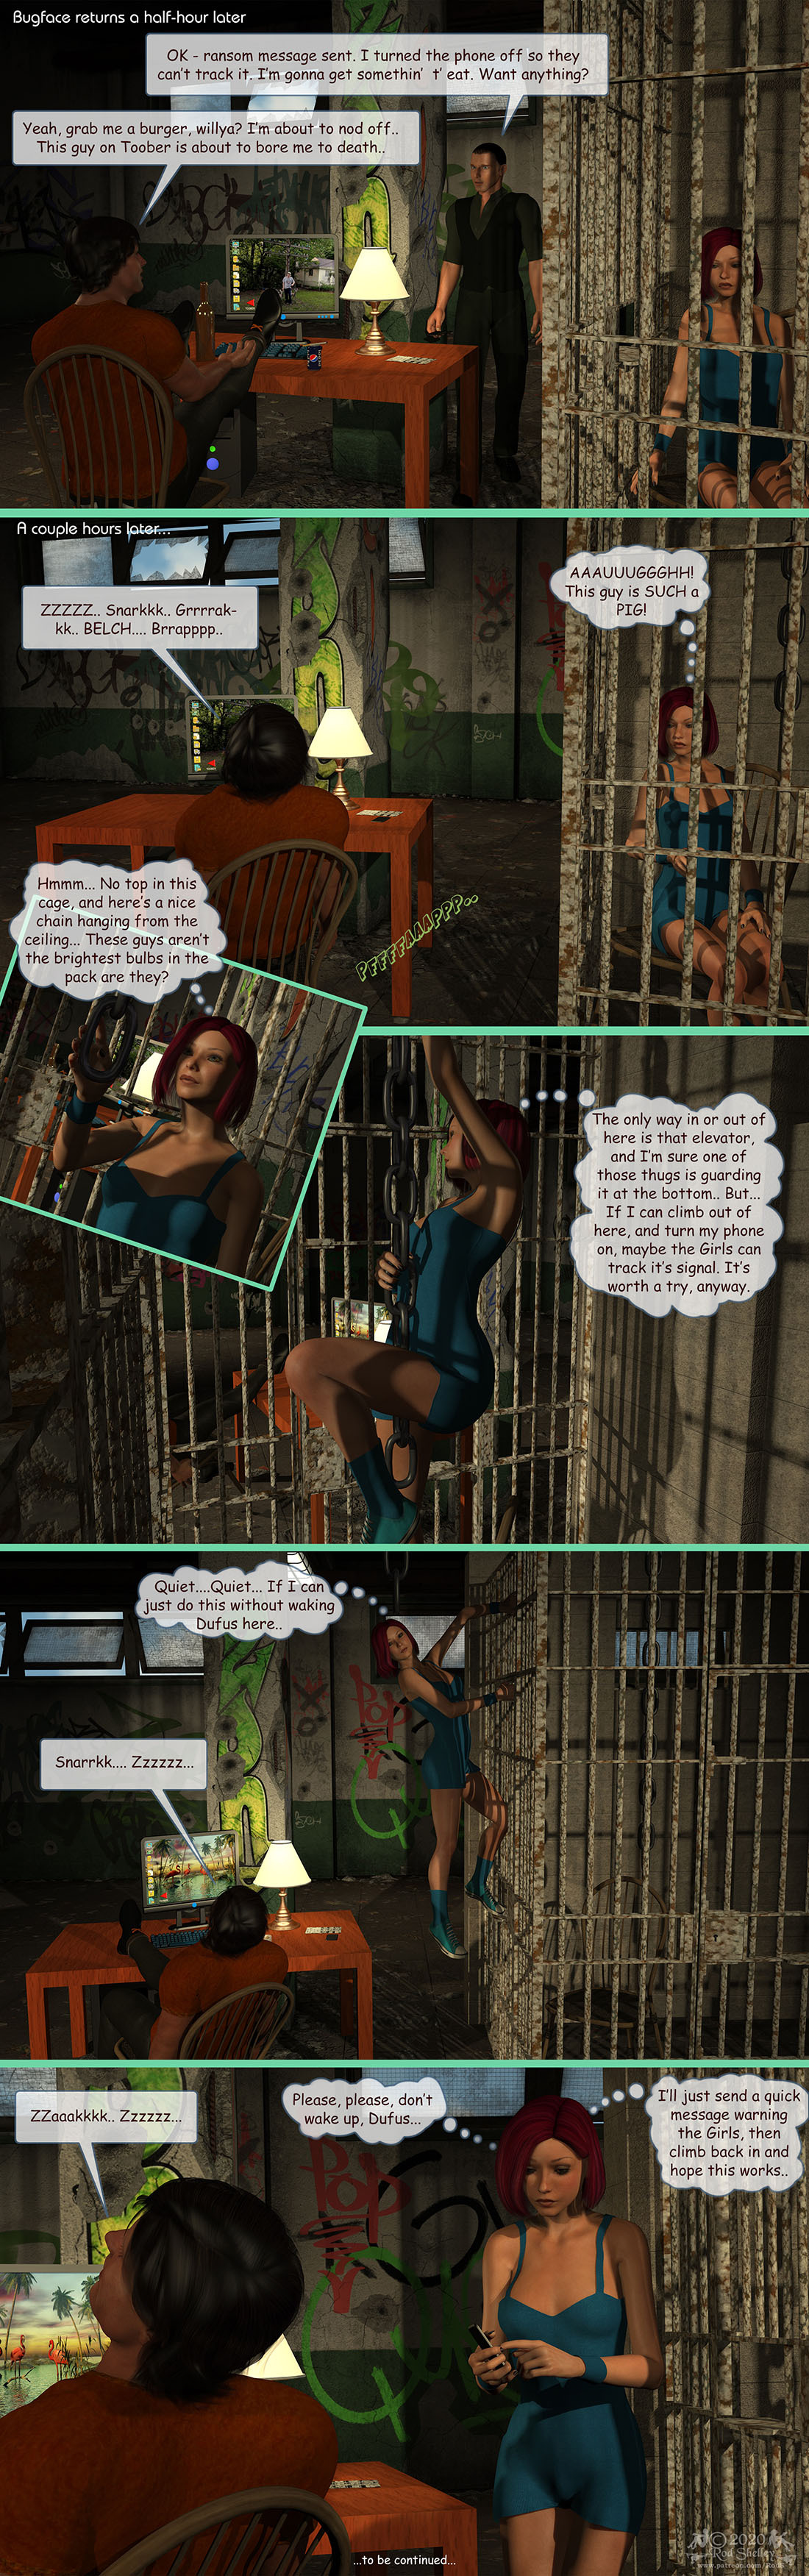 Girls From T.N.A: Breitlenger Jar: Ch 7 Page 10 by RodS